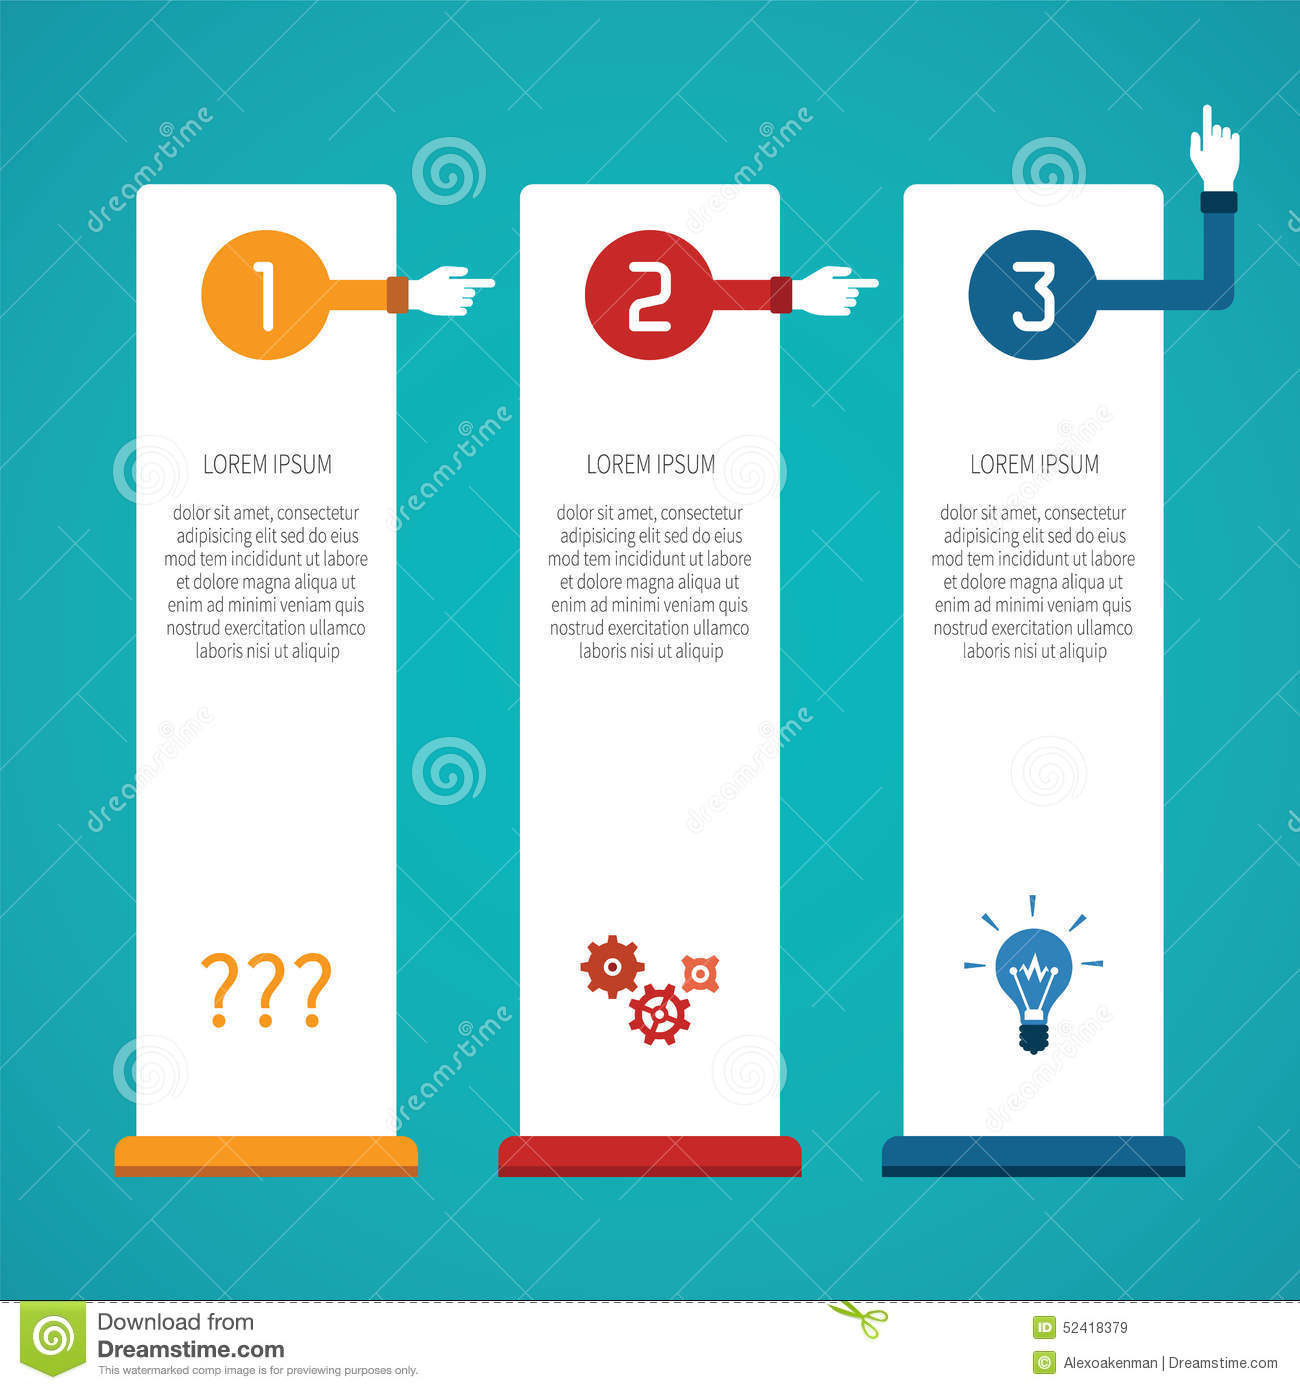 Abstract Vector 3 Steps Infographic Template In Flat Style For Layout Workflow Scheme  Numbered